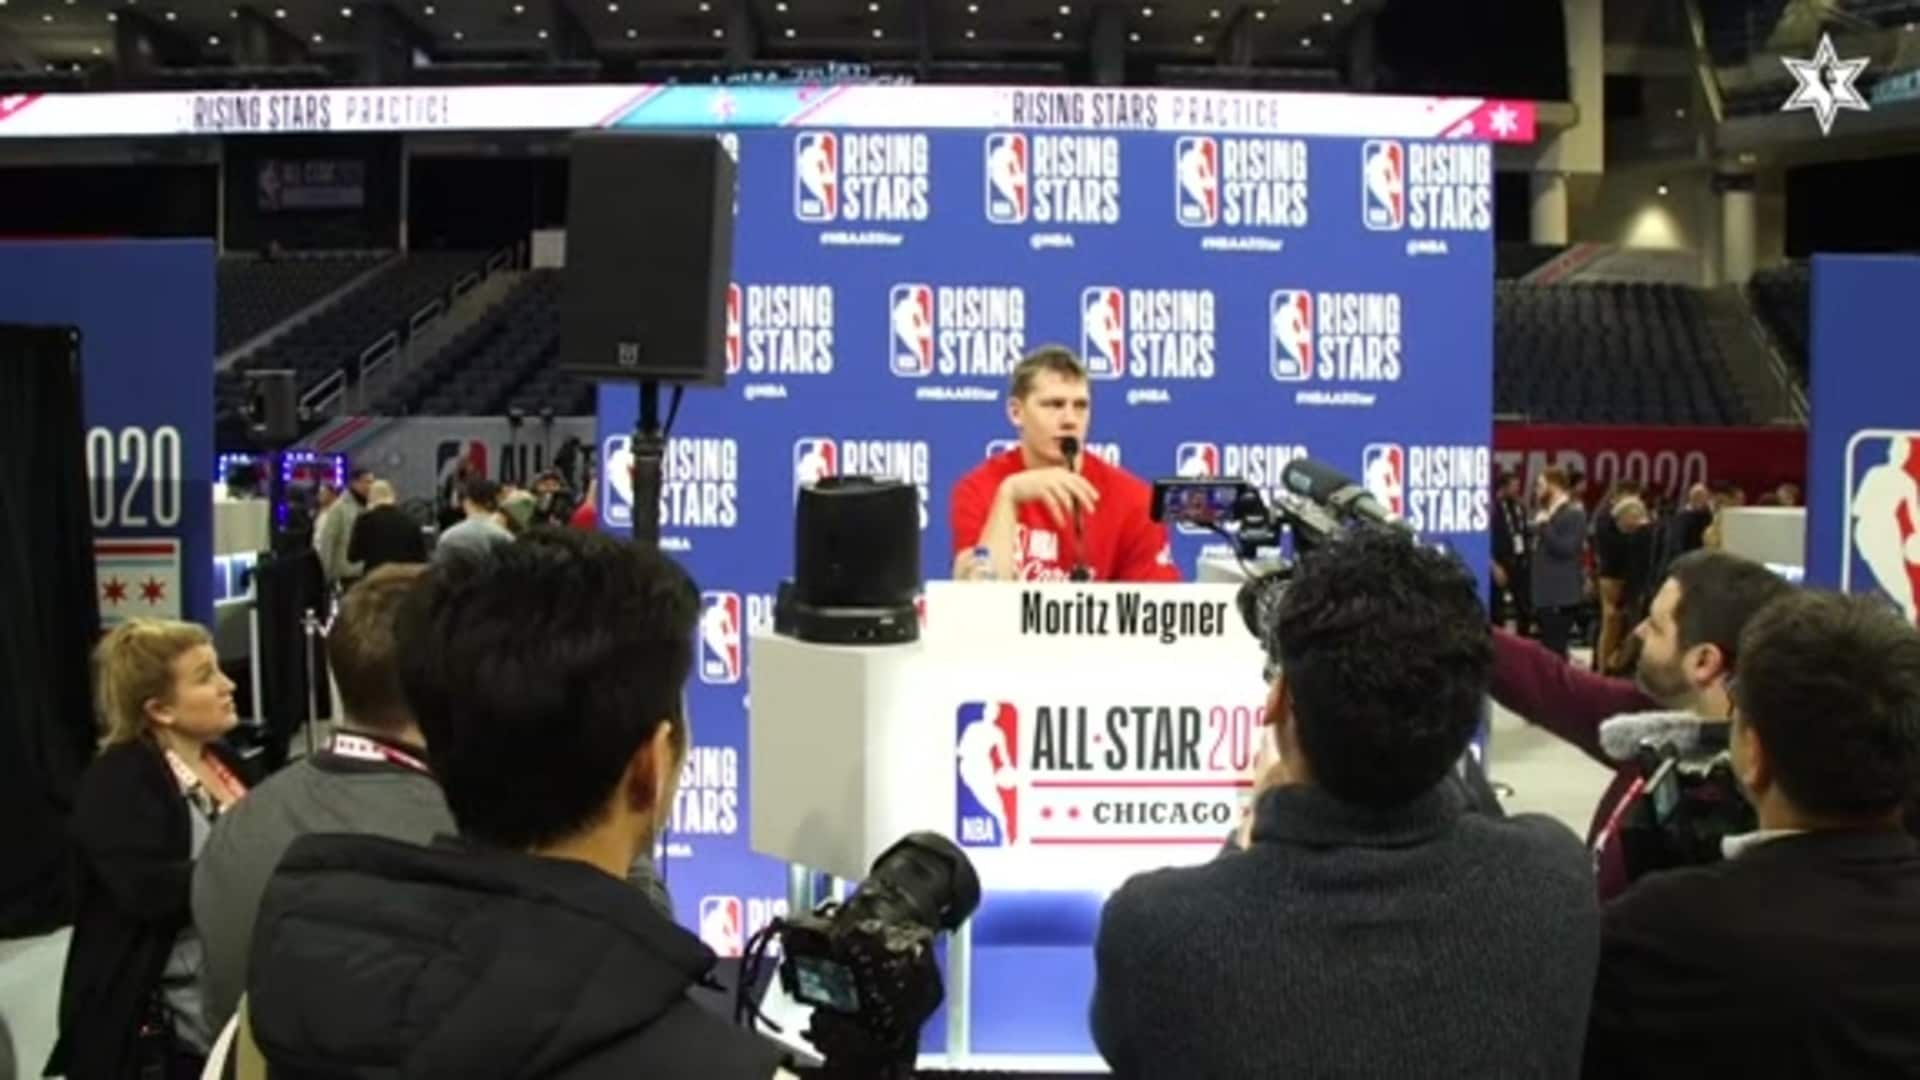 All-Star All-Access: Moe Wagner at NBA All-Star 2020